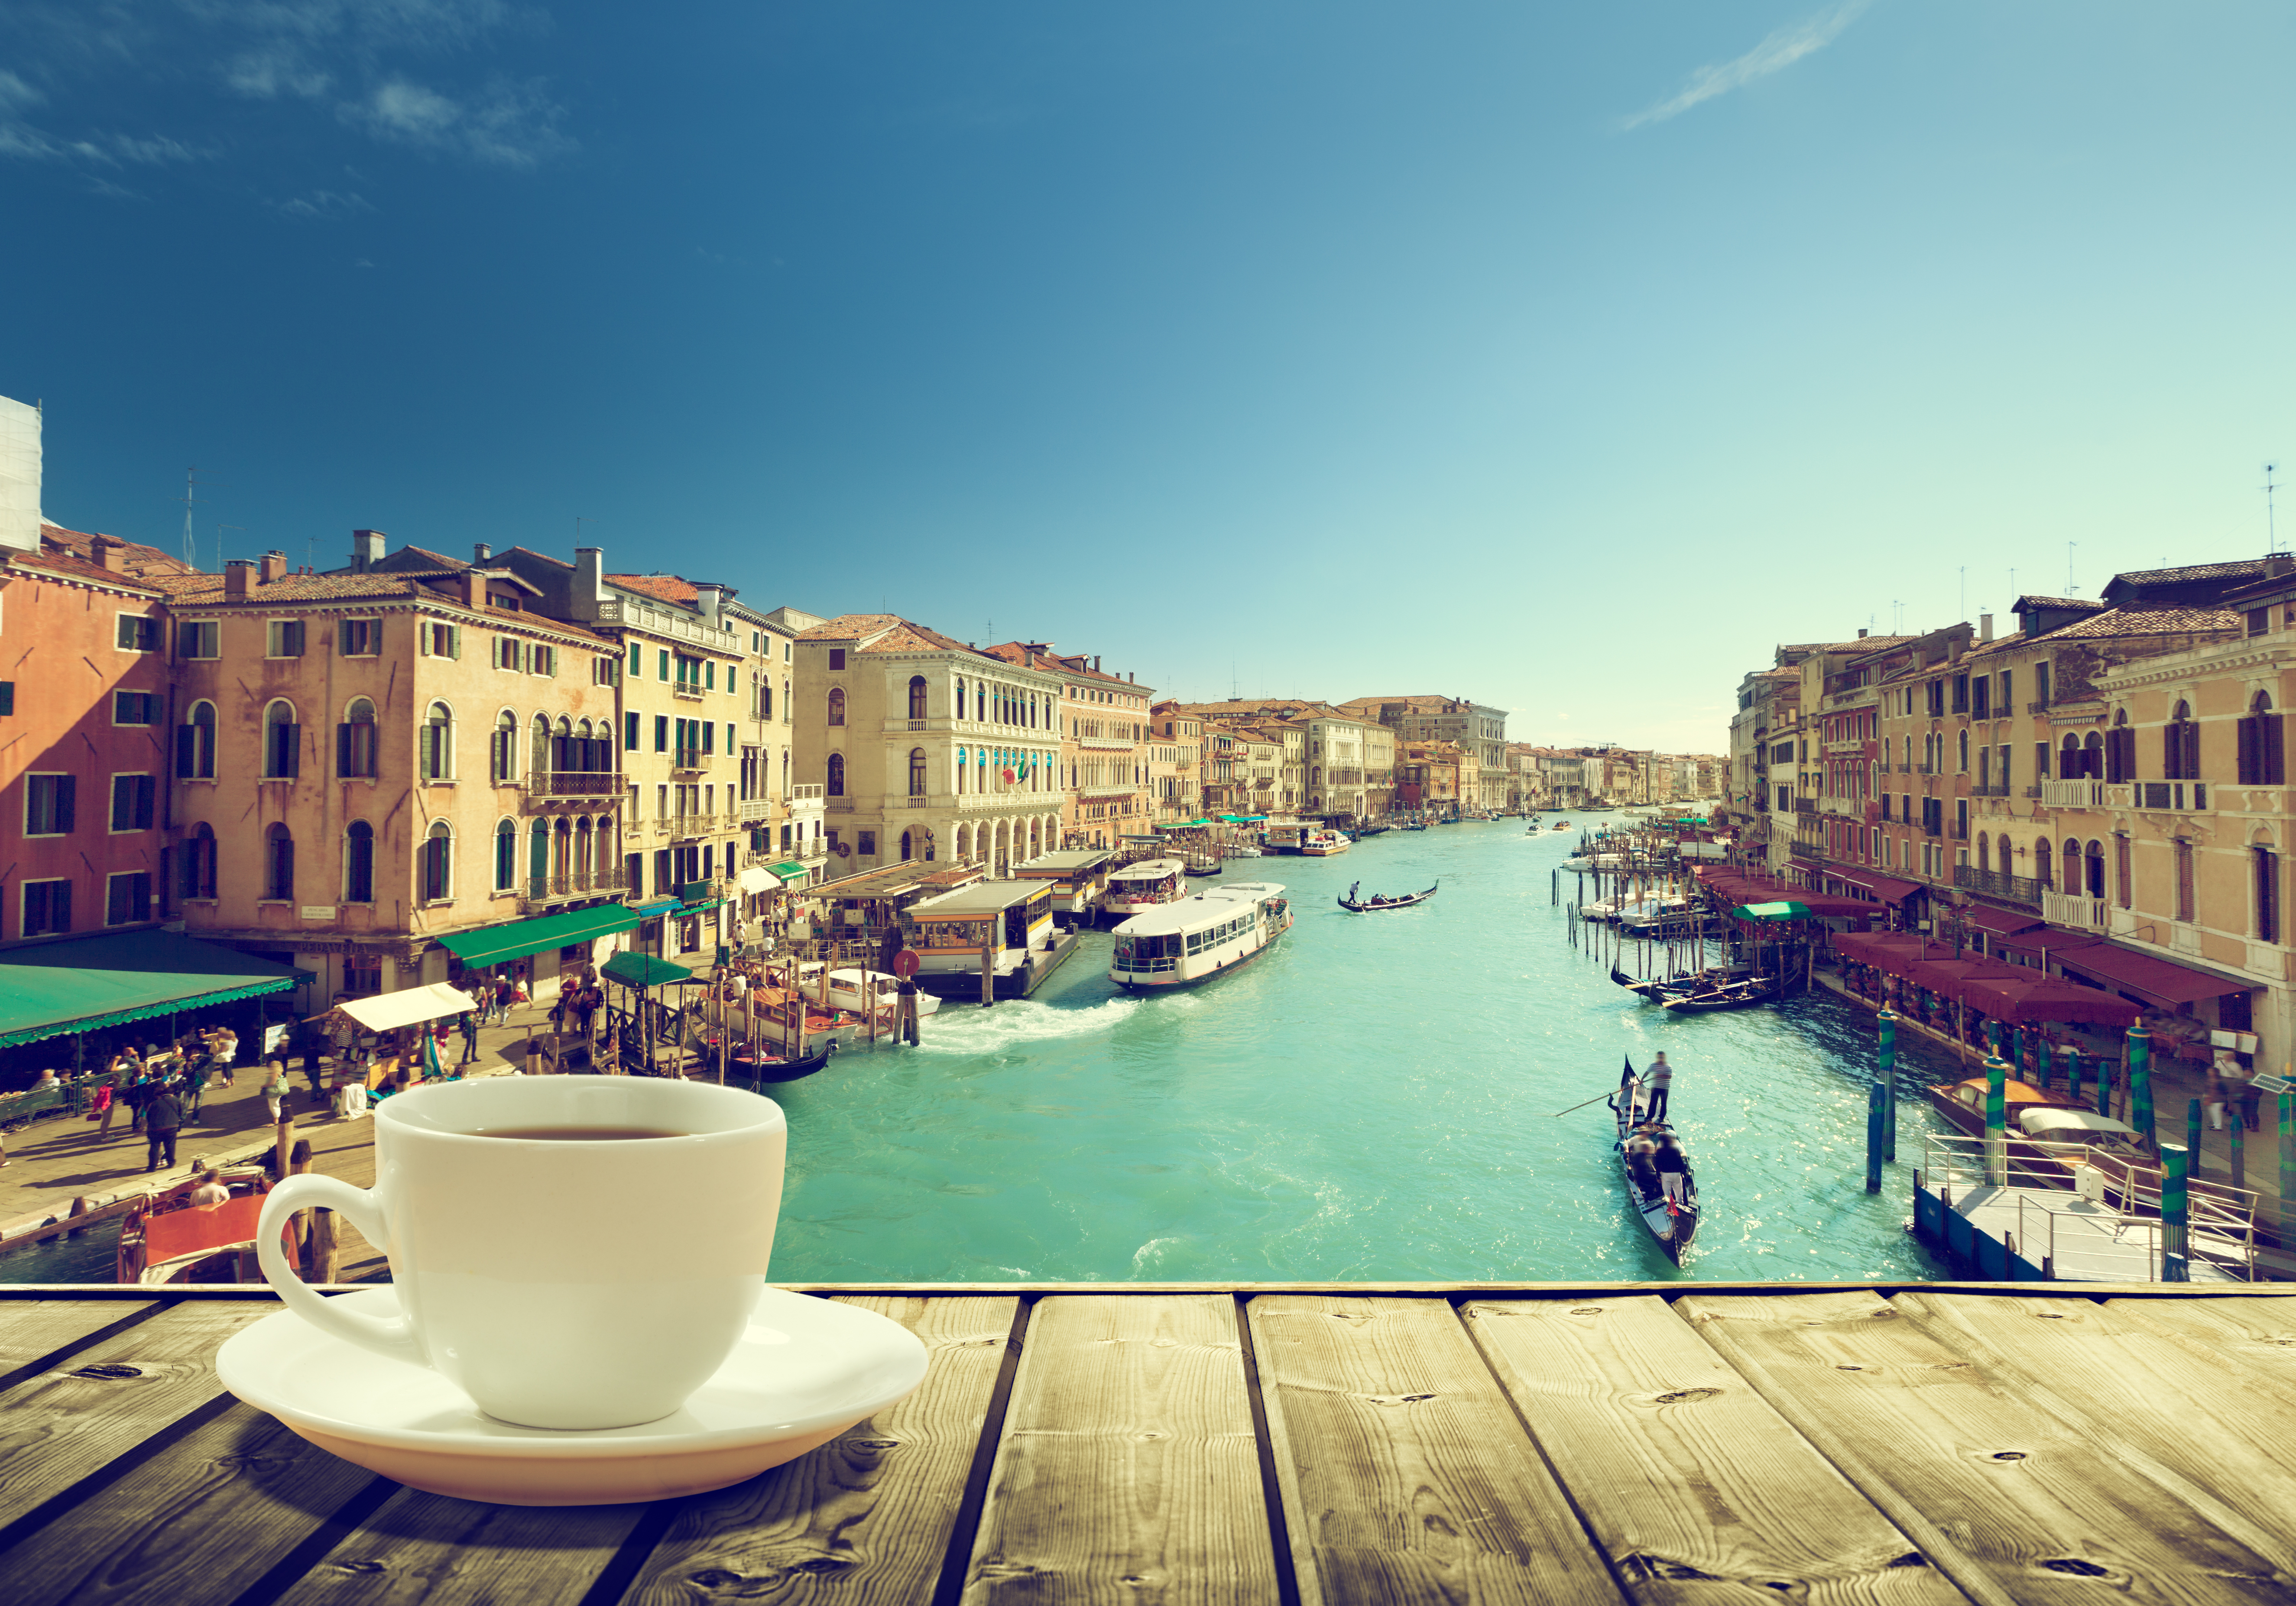 How to Order Coffee in Italy Free Italy Travel Advice Dream of